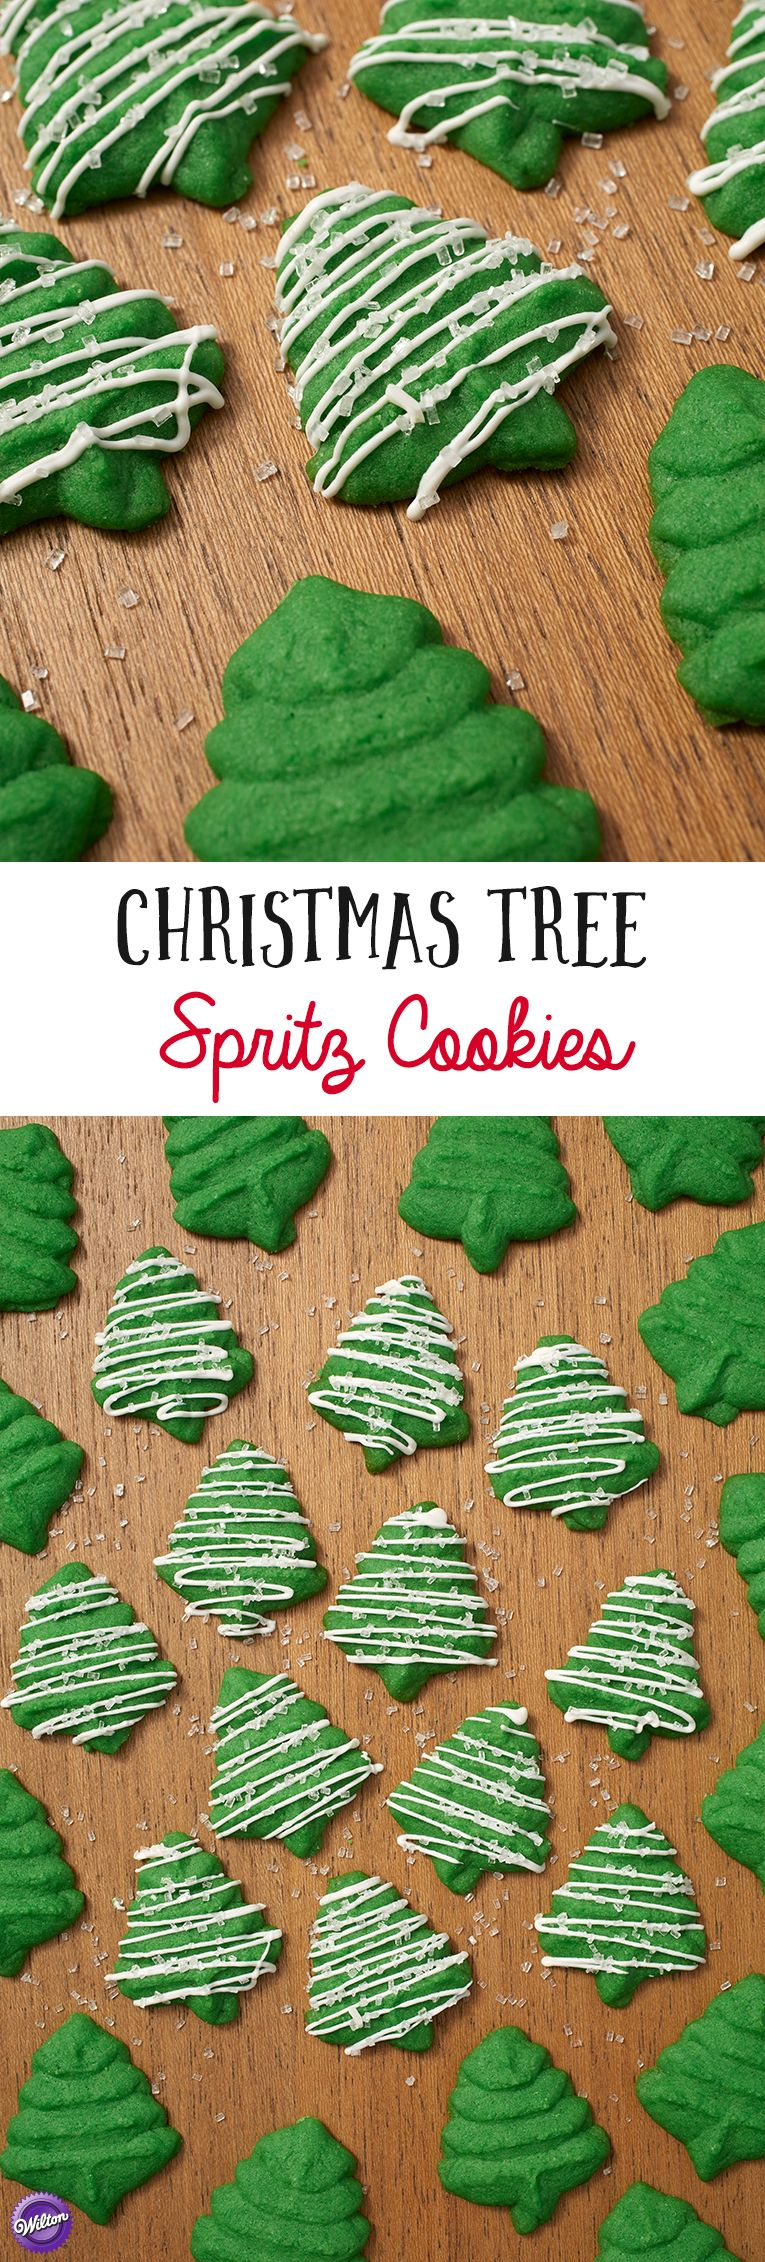 Christmas Tree Spritz Cookies Holiday Cookie Recipes Ideas